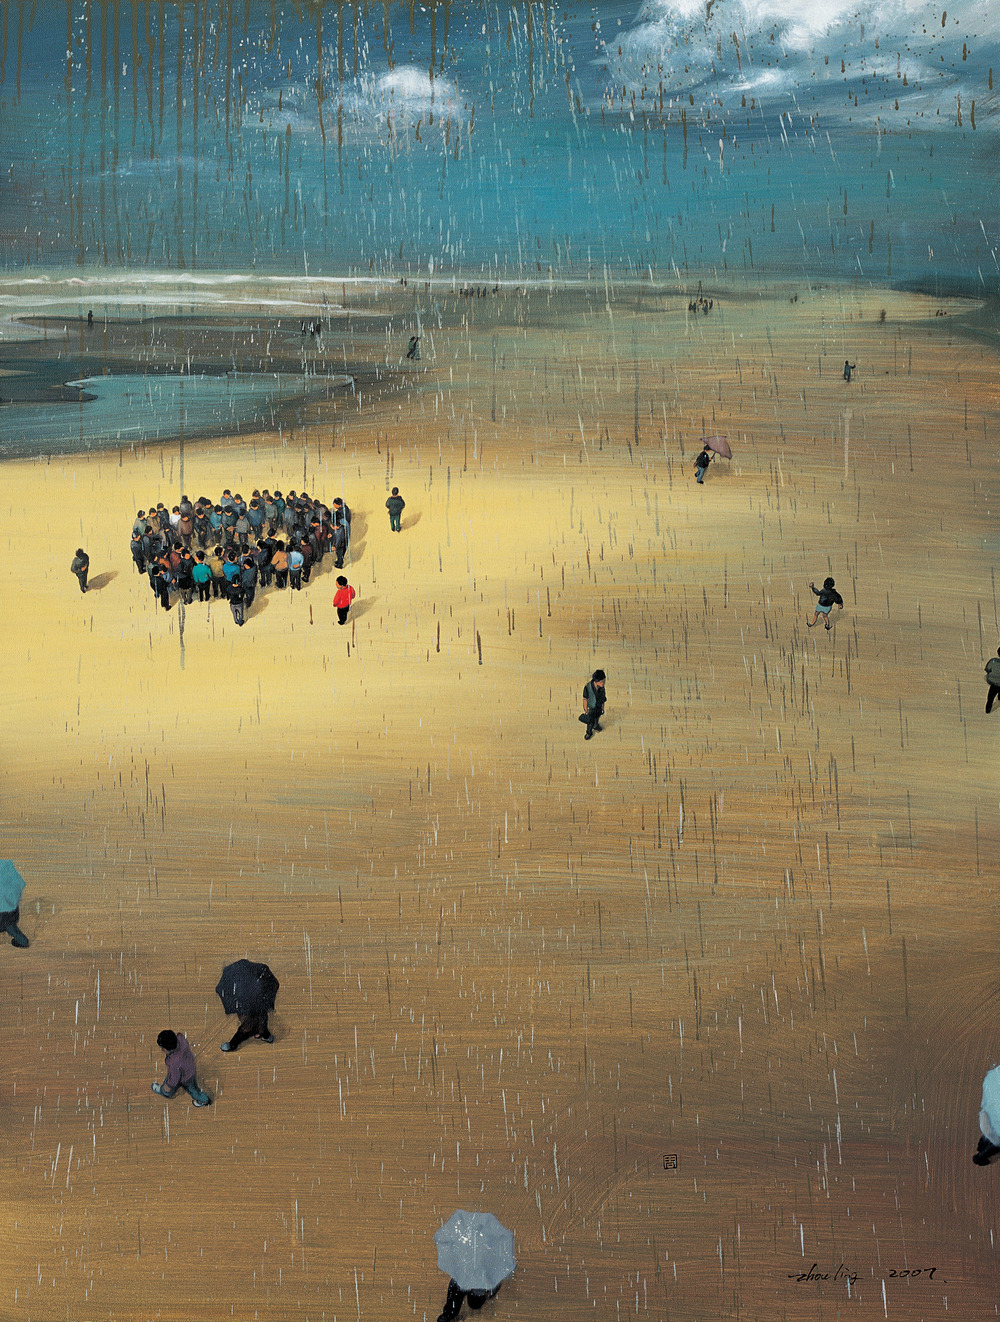 Zhou Jinhua 周金华, It's All the Same in the End No.2 最后结果都一样 No.2, 2007, Oil on canvas 布面油画, 145 x 110 cm